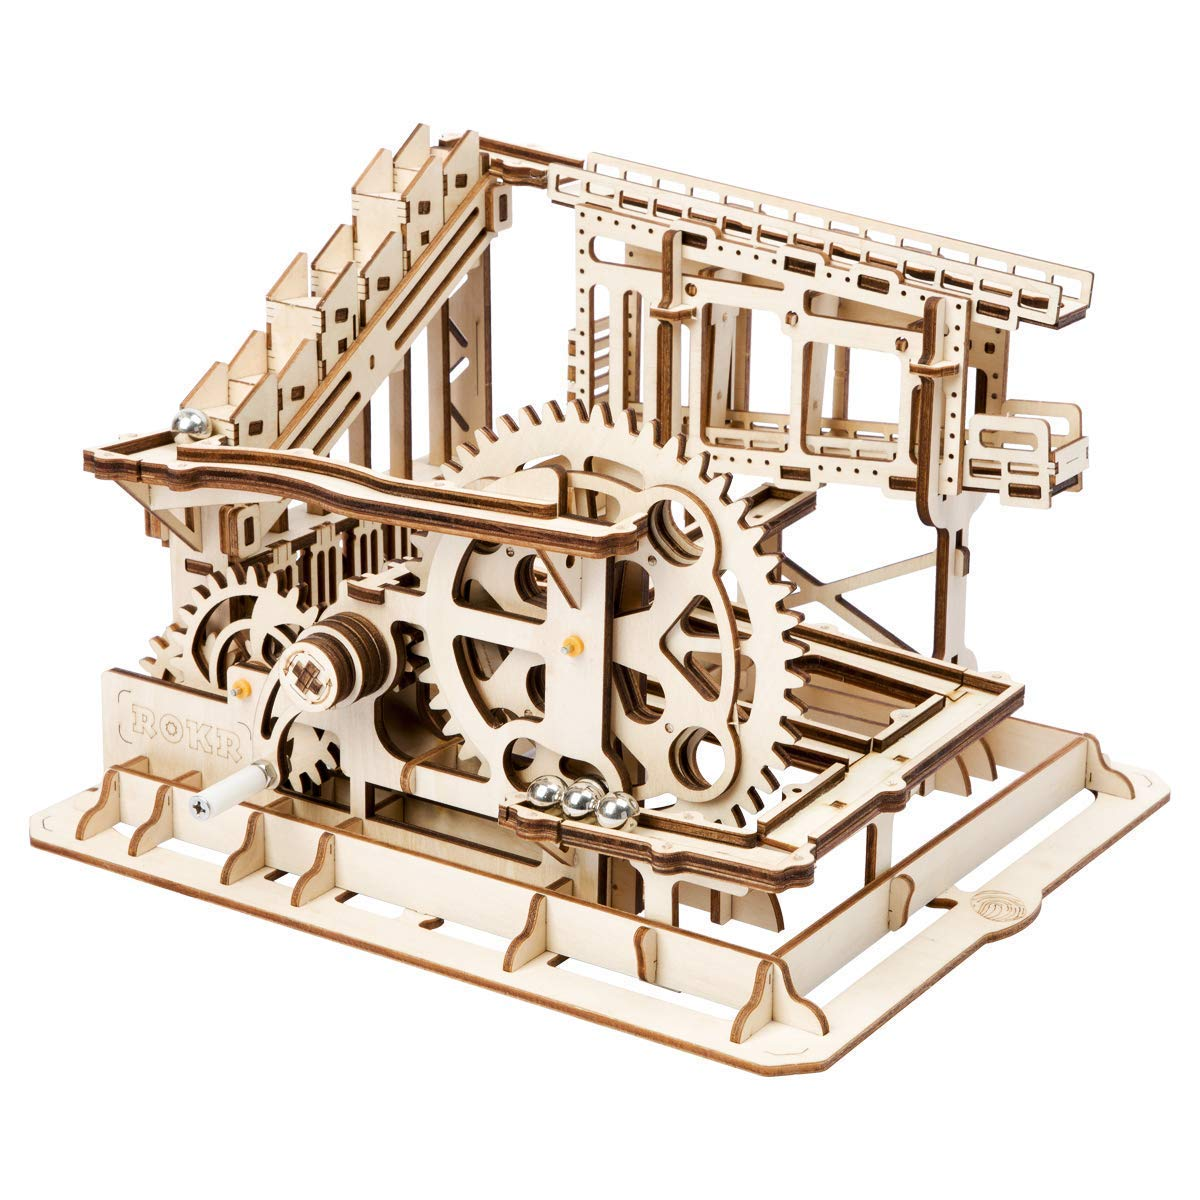 A Model Building Kits Mechanical 3D Wood Puzzle,Wood Lift Marble Coaster Mechanical Construction Kit with Ball Toy Gifts for Adults & Teens,A